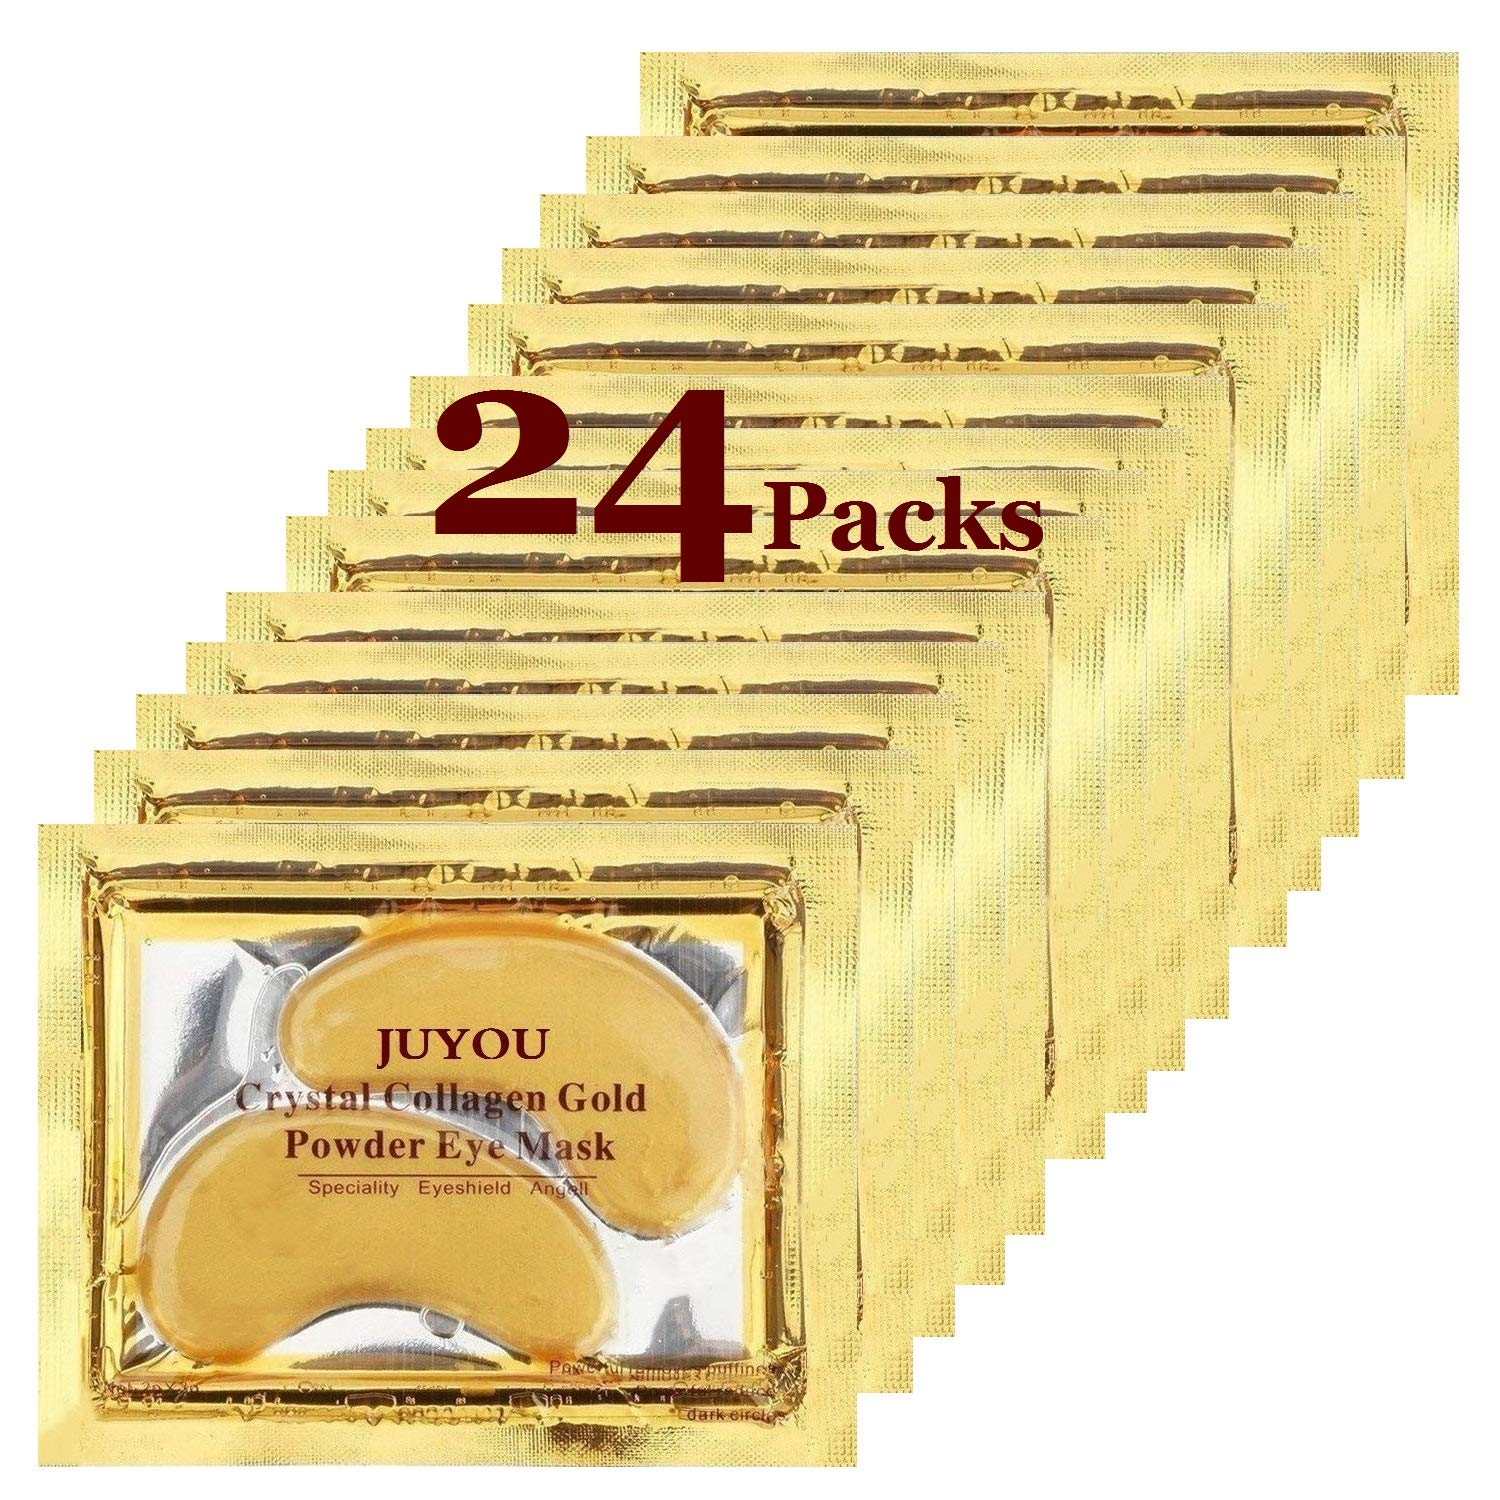 Under Eye Patches, Eye Mask, Gold Under Eye Mask, Gold Eye Mask, Eye Pads, Collagen Eye Patch, JUYOU Eye Patch For Anti-wrinkles, Puffy Eyes, Dark Circles, Fine Lines Treatment (24Pairs 24k Gold)